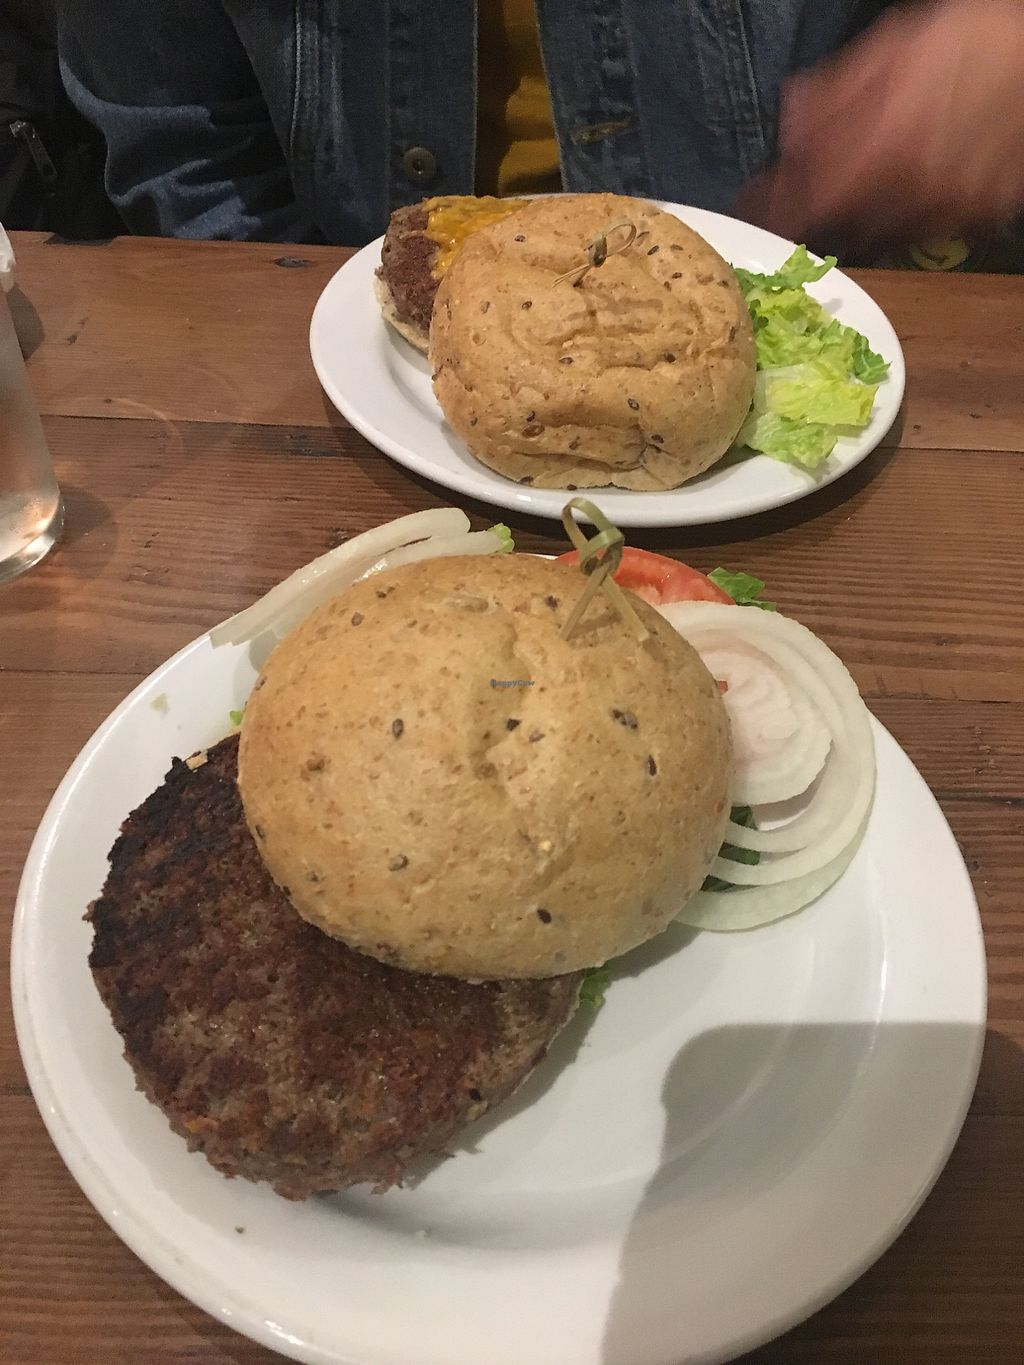 "Photo of Legume Kitchen & Bar  by <a href=""/members/profile/mem2024"">mem2024</a> <br/>New Spring menu item - the impossible burger!!! <br/> April 4, 2018  - <a href='/contact/abuse/image/80224/380498'>Report</a>"